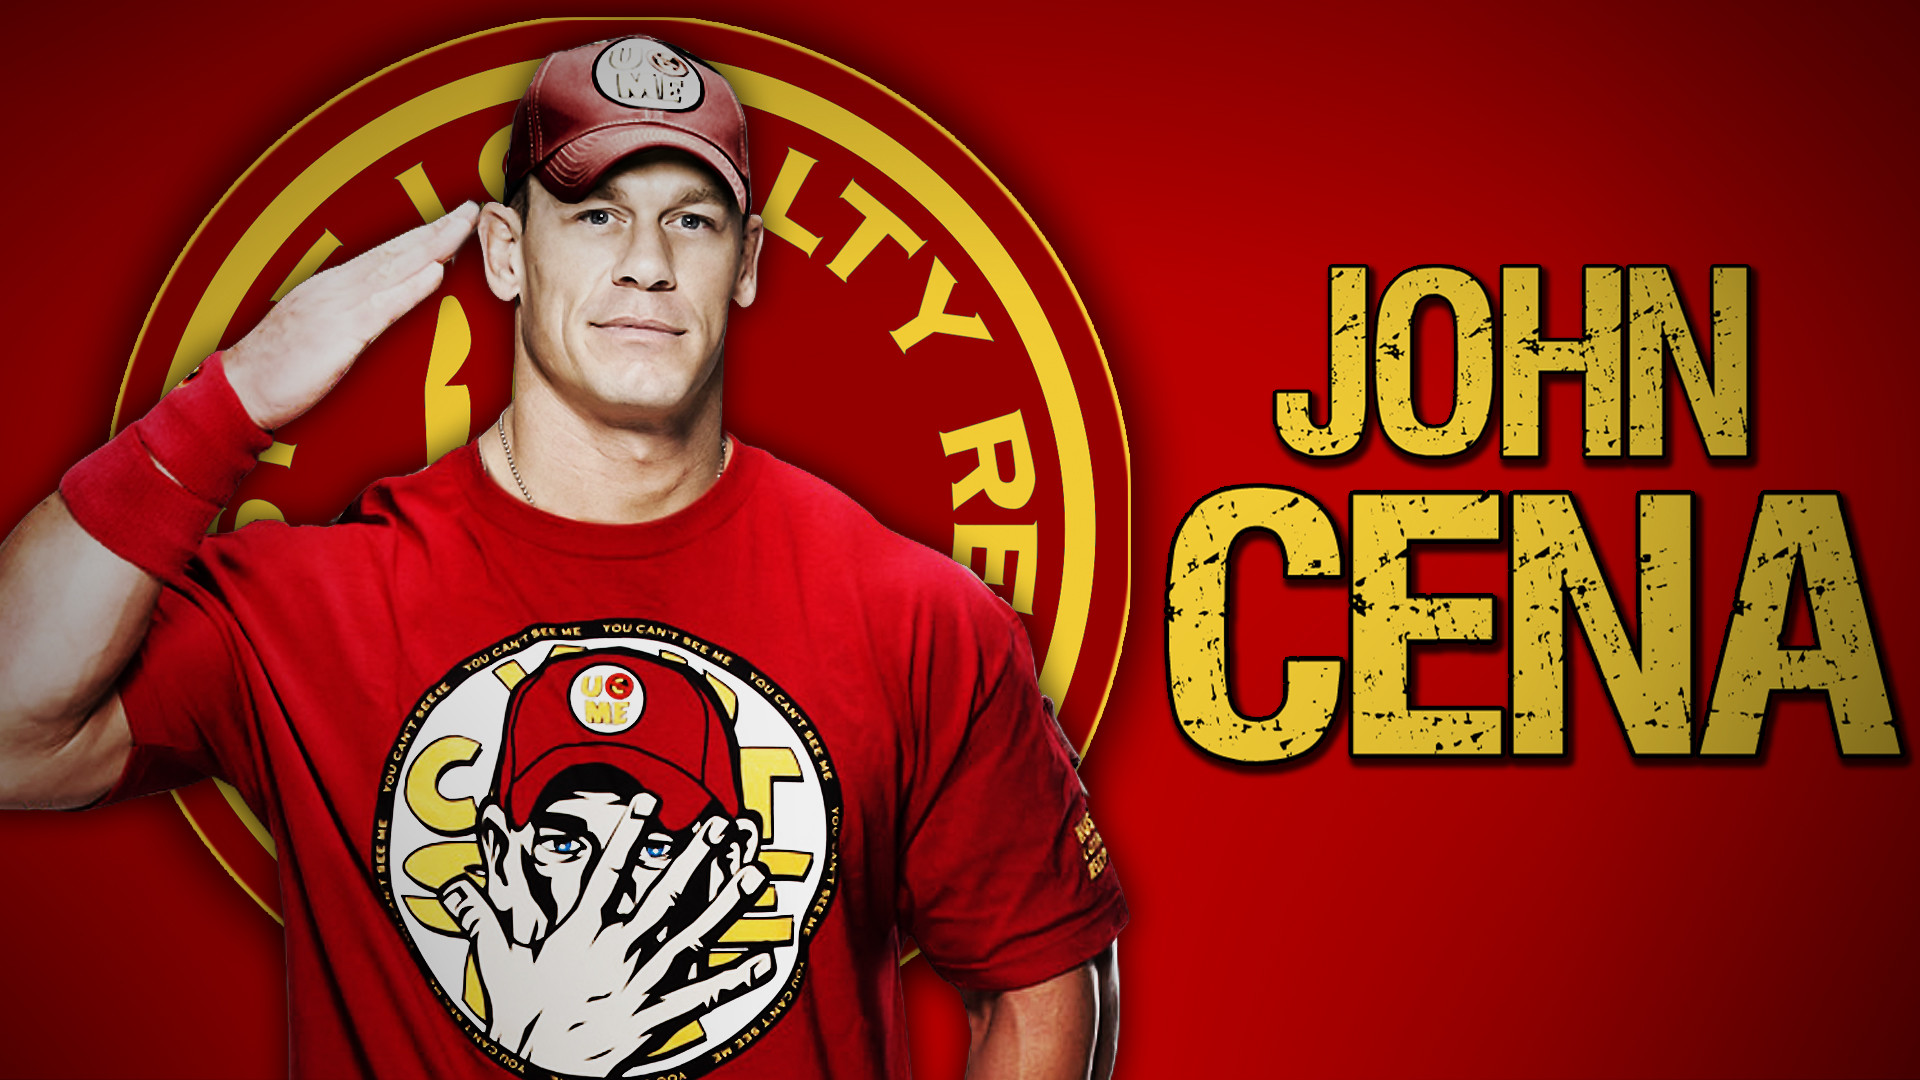 john cena John felix anthony cena jr (/ ˈ s iː n ə / born april 23, 1977) is an american professional wrestler, philanthropist and actorhe is currently signed to wwe, where he is a free agent who appears for both the raw and smackdown brands.